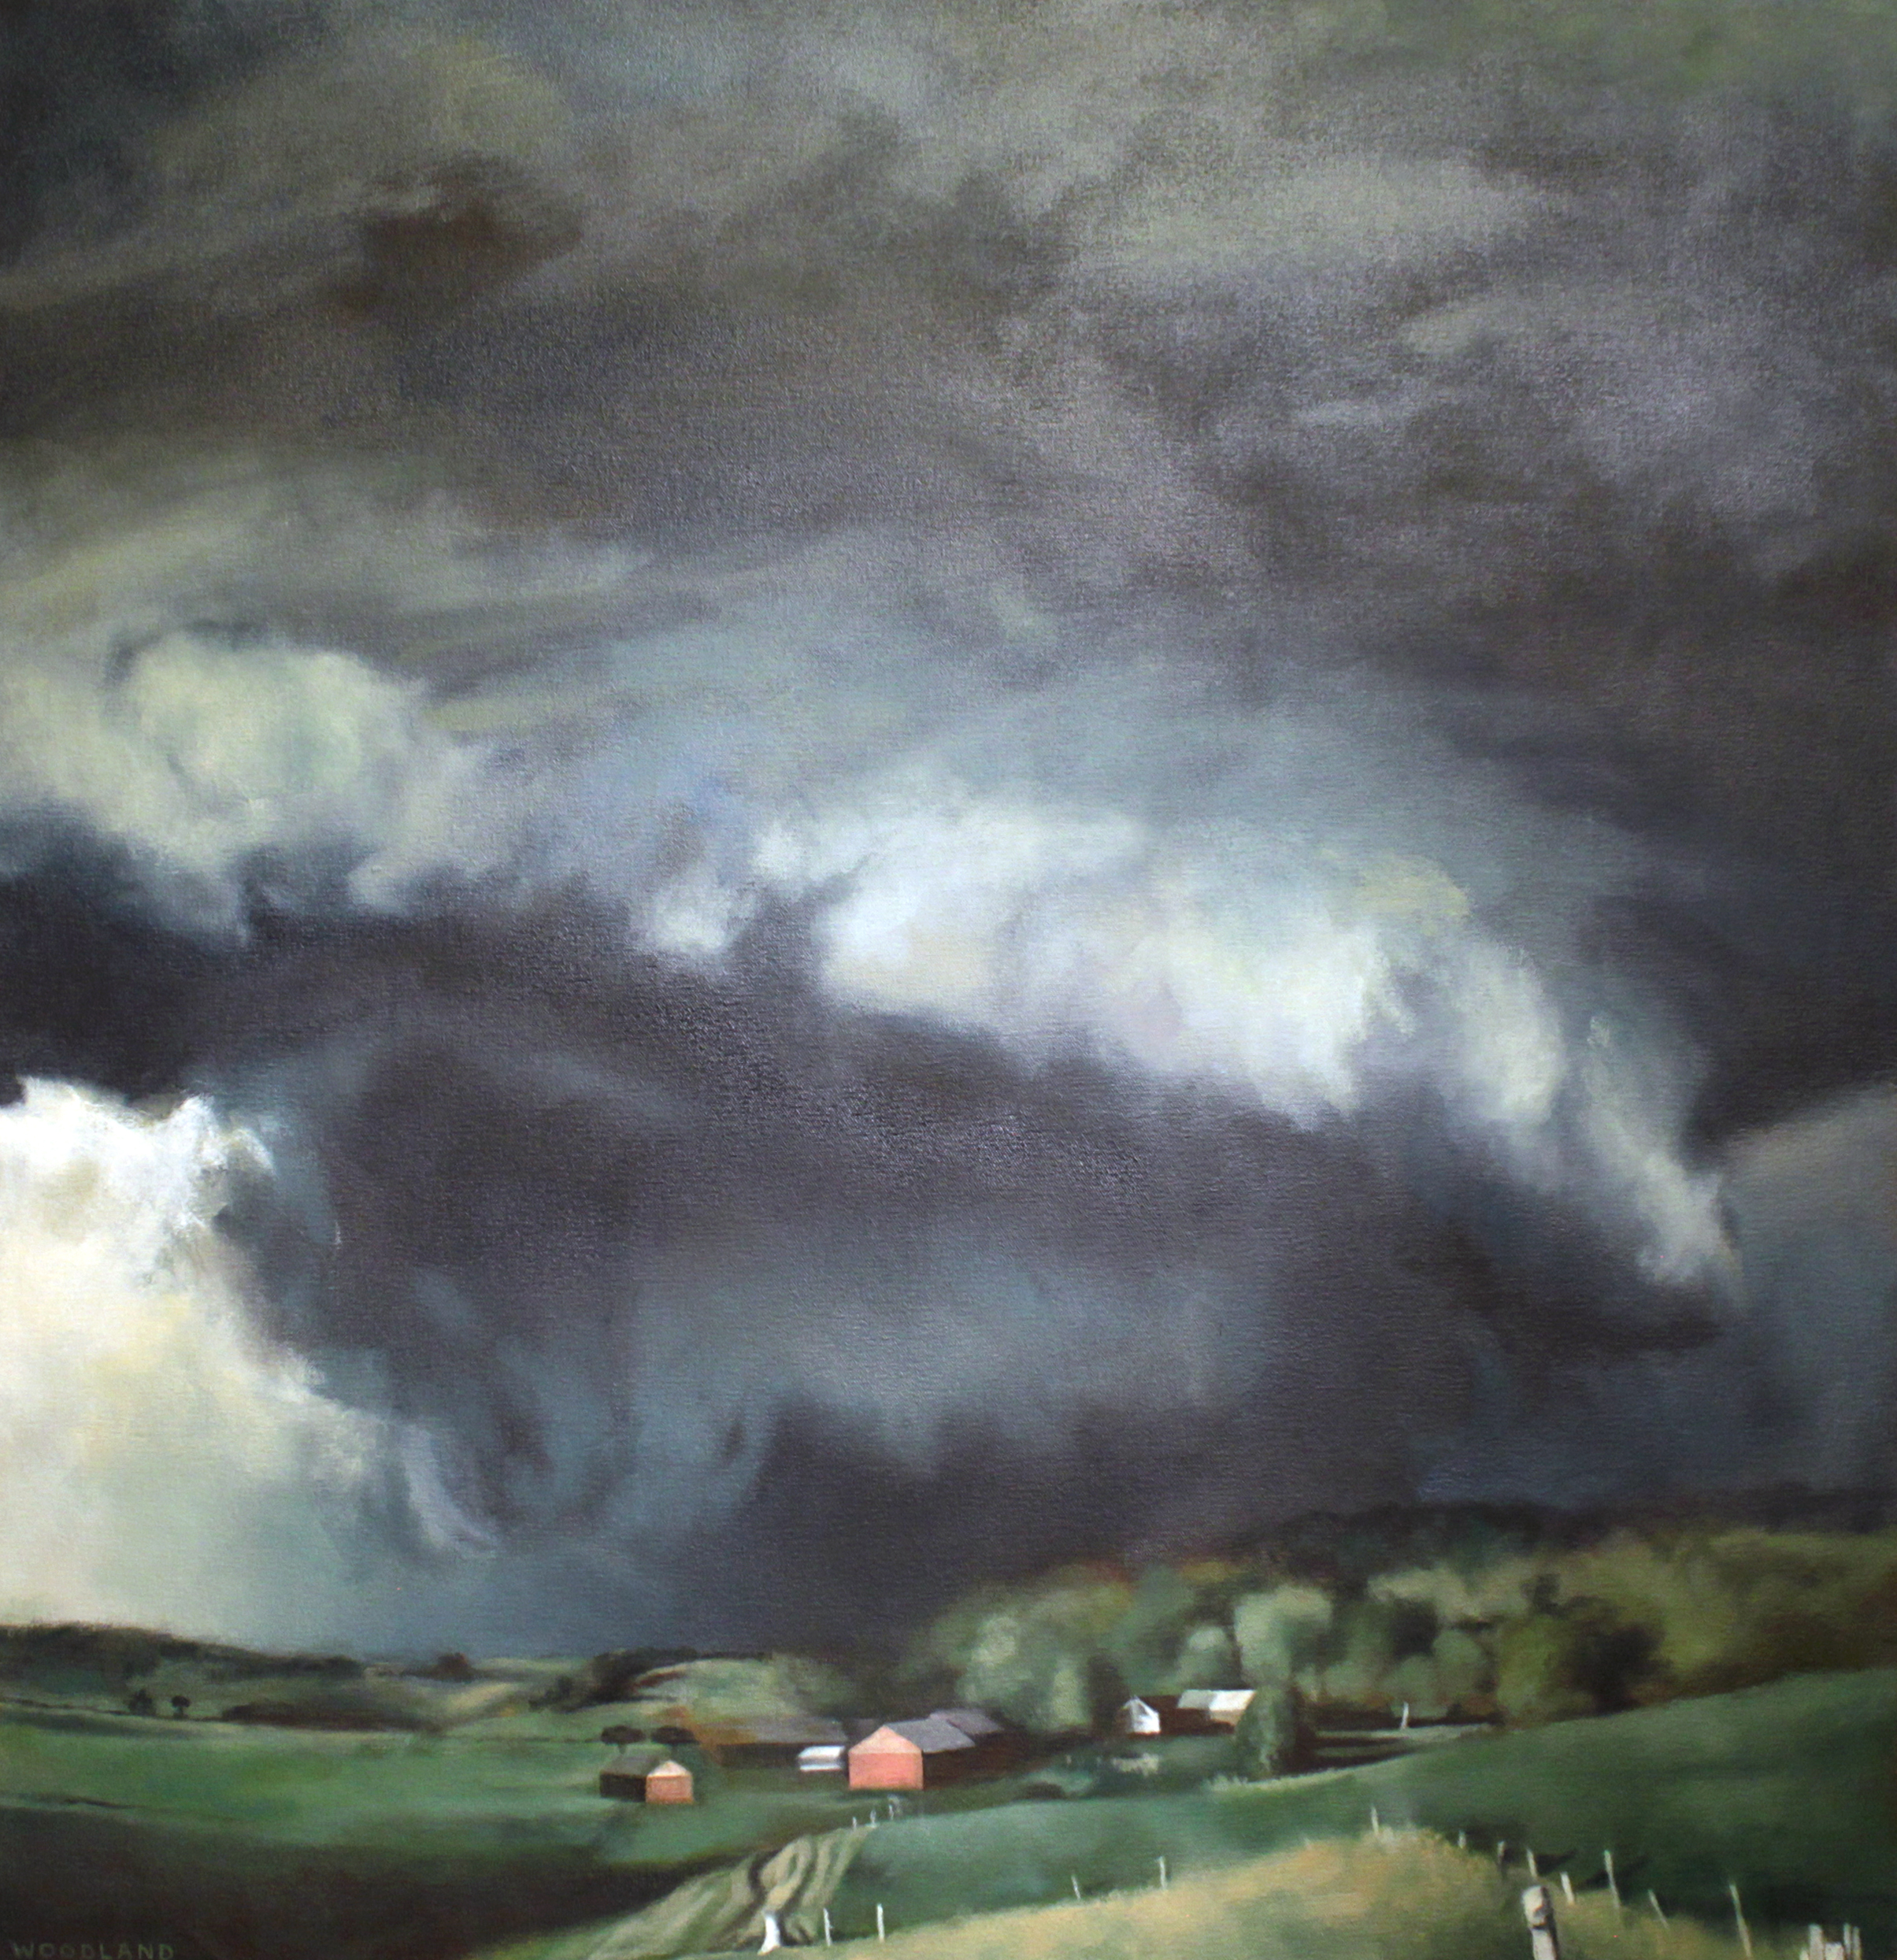 "Severe Storm, Oil on Canvas, 2011, 36"" x 36"" SOLD."